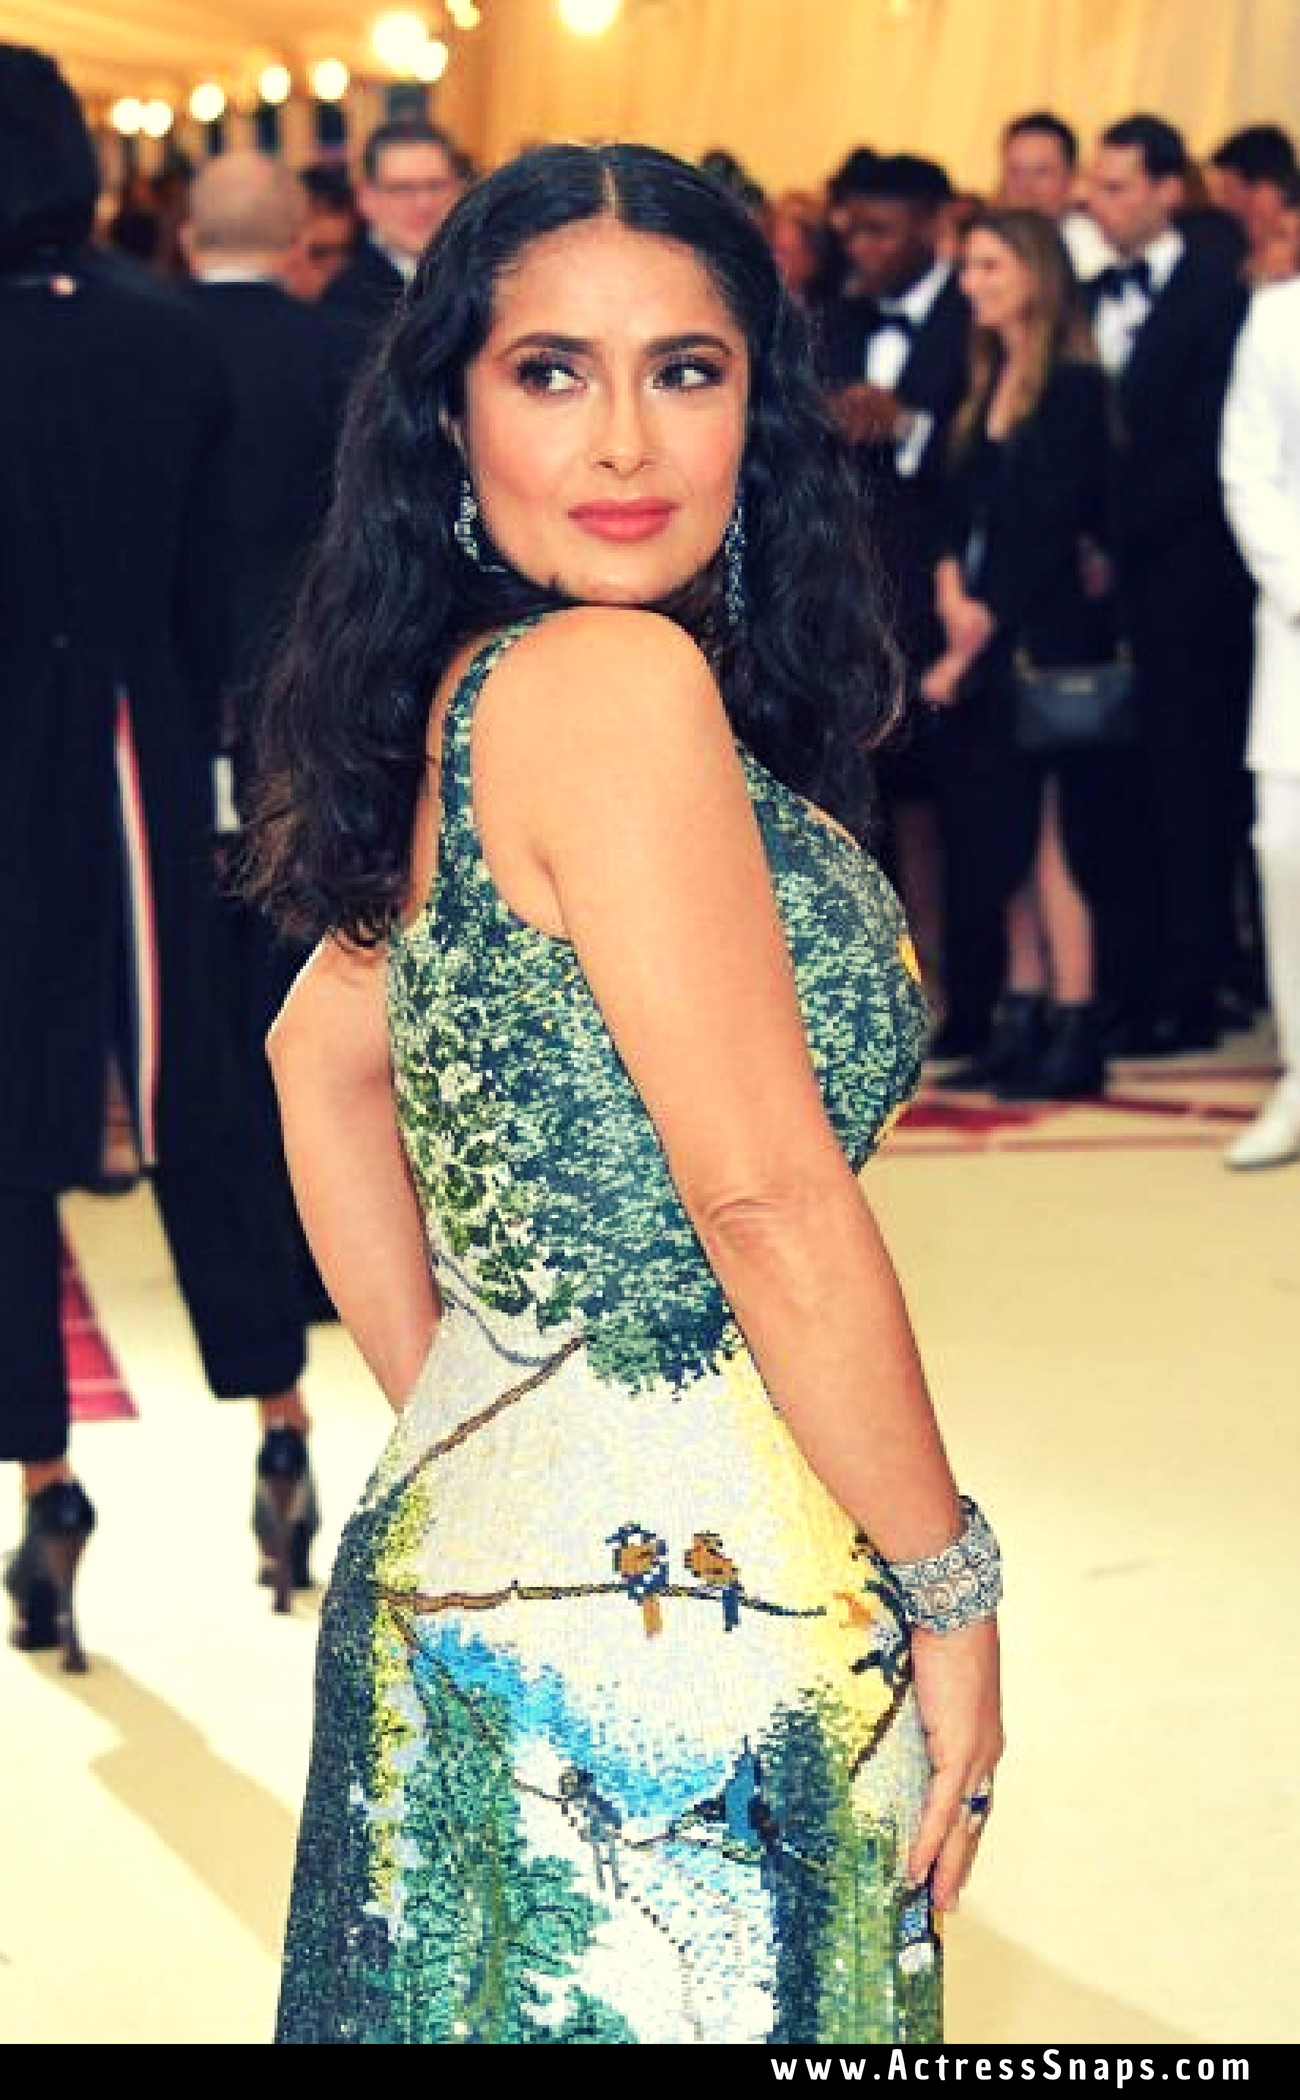 Beautiful Salma Hayek at 2018 MET Gala Pictures - Sexy Actress Pictures | Hot Actress Pictures - ActressSnaps.com